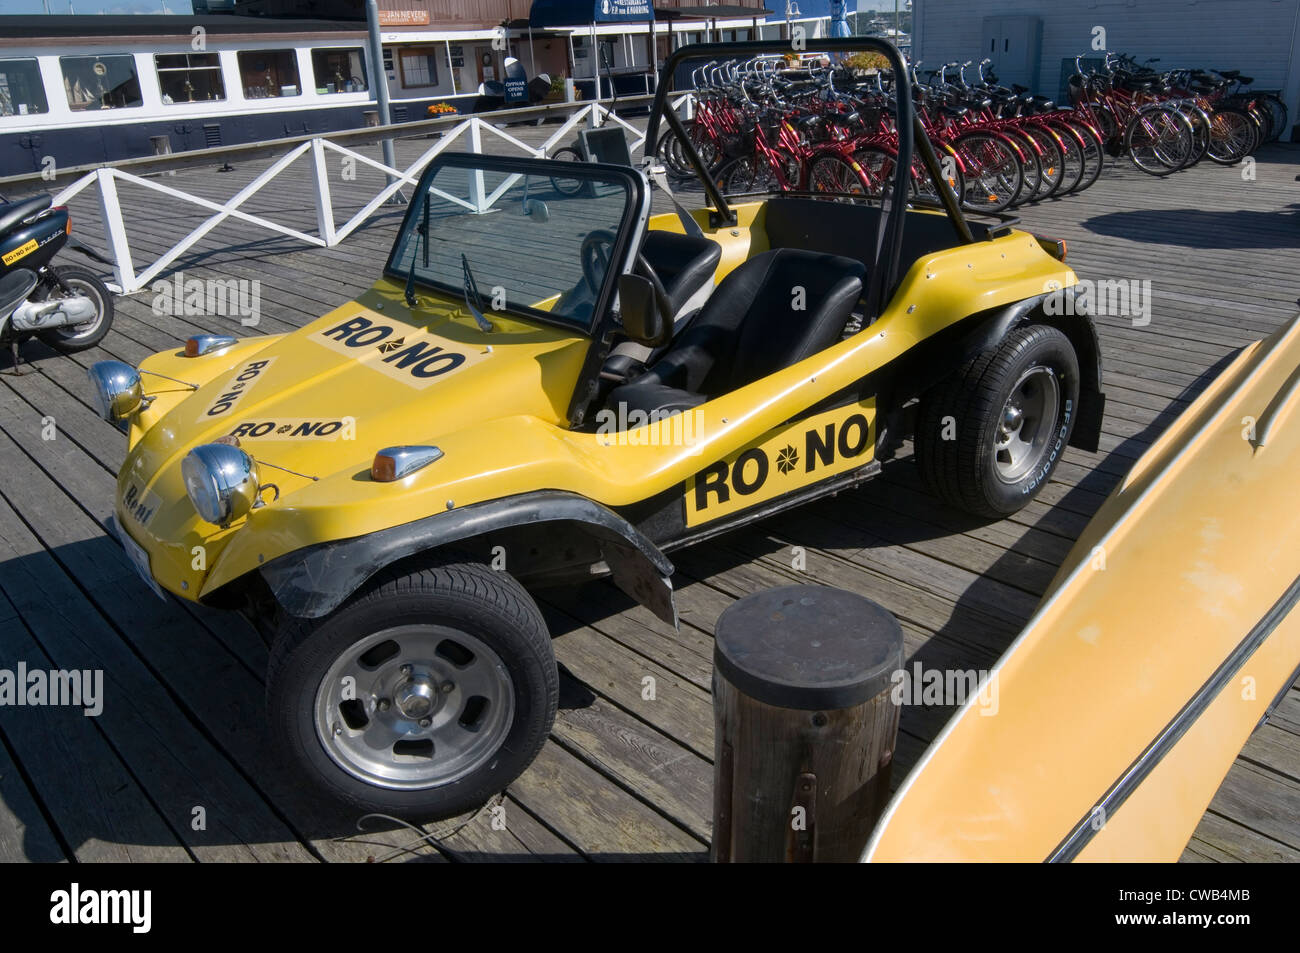 beach buggy buggies vw beetle kit car cars - Stock Image